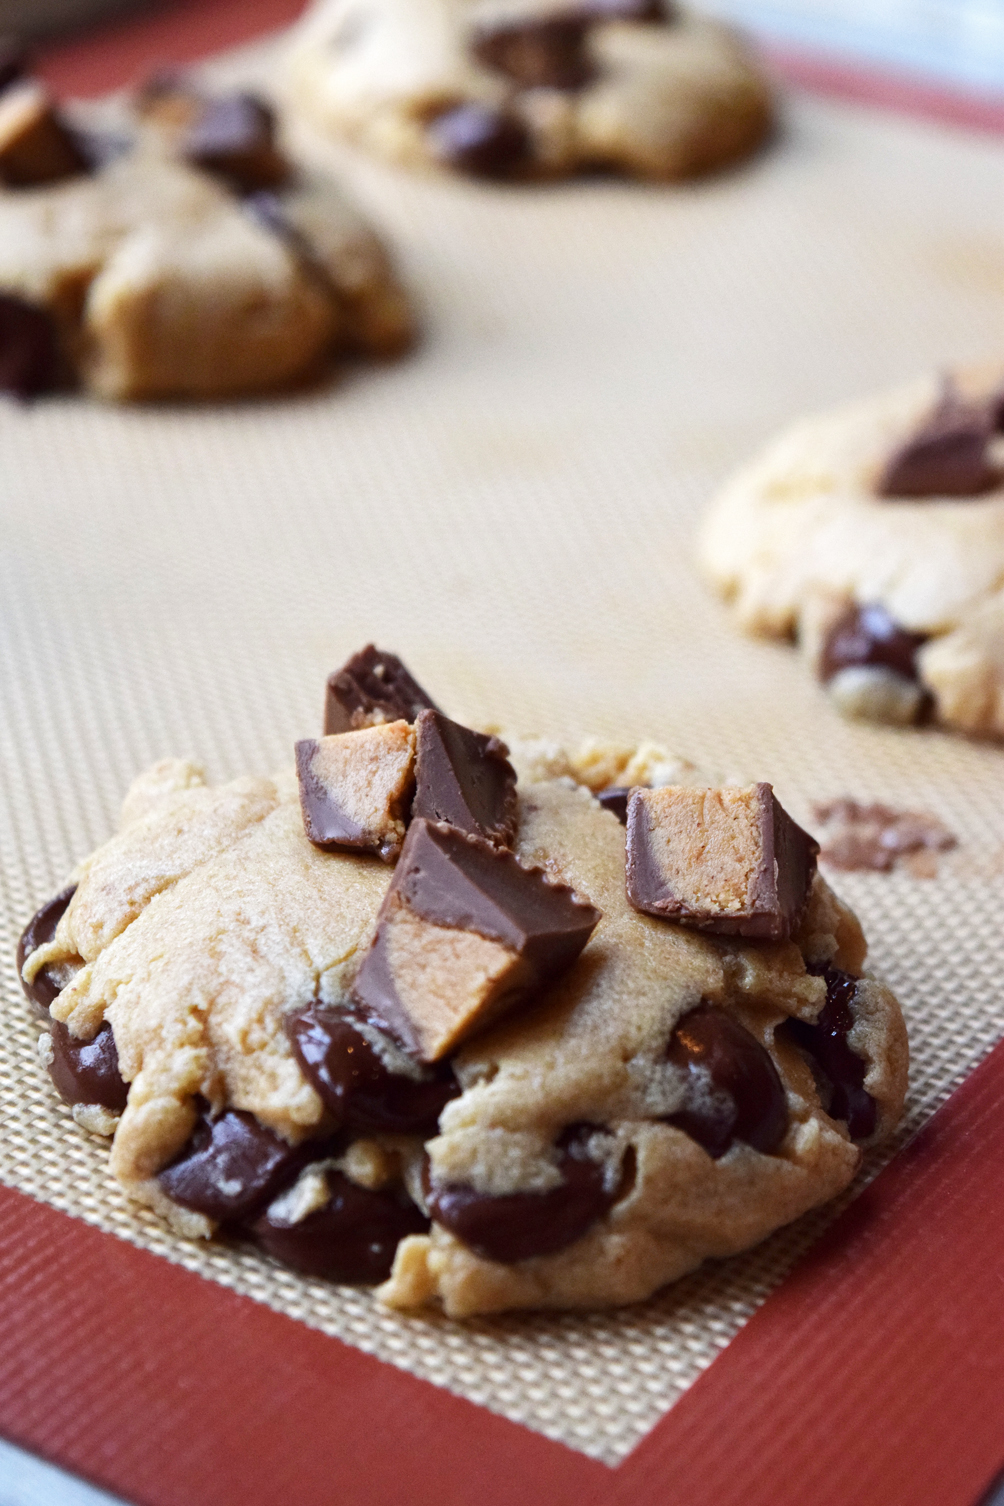 Reese's peanut butter cookies